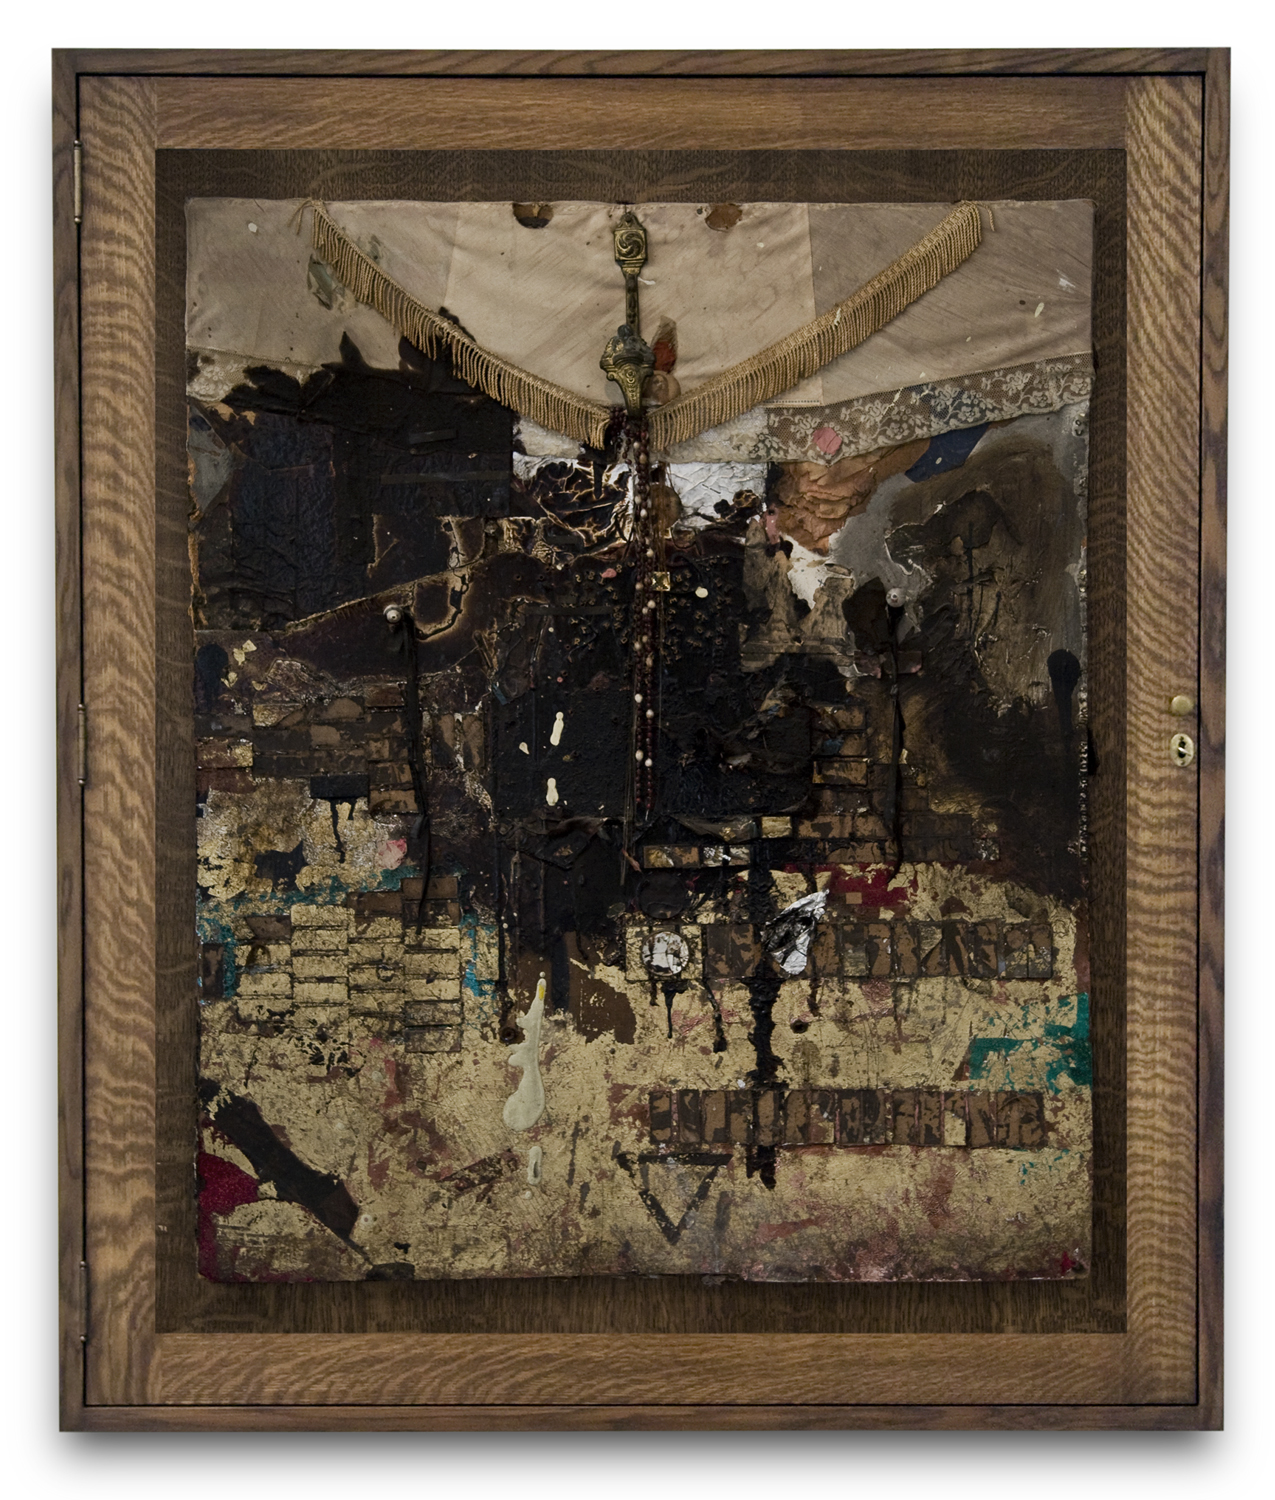 Bruce Conner, GOOD FRIDAY, 1962, mixed media assemblage in wooden box frame designed by Bruce Conner, 55 x 10 x 46 inches